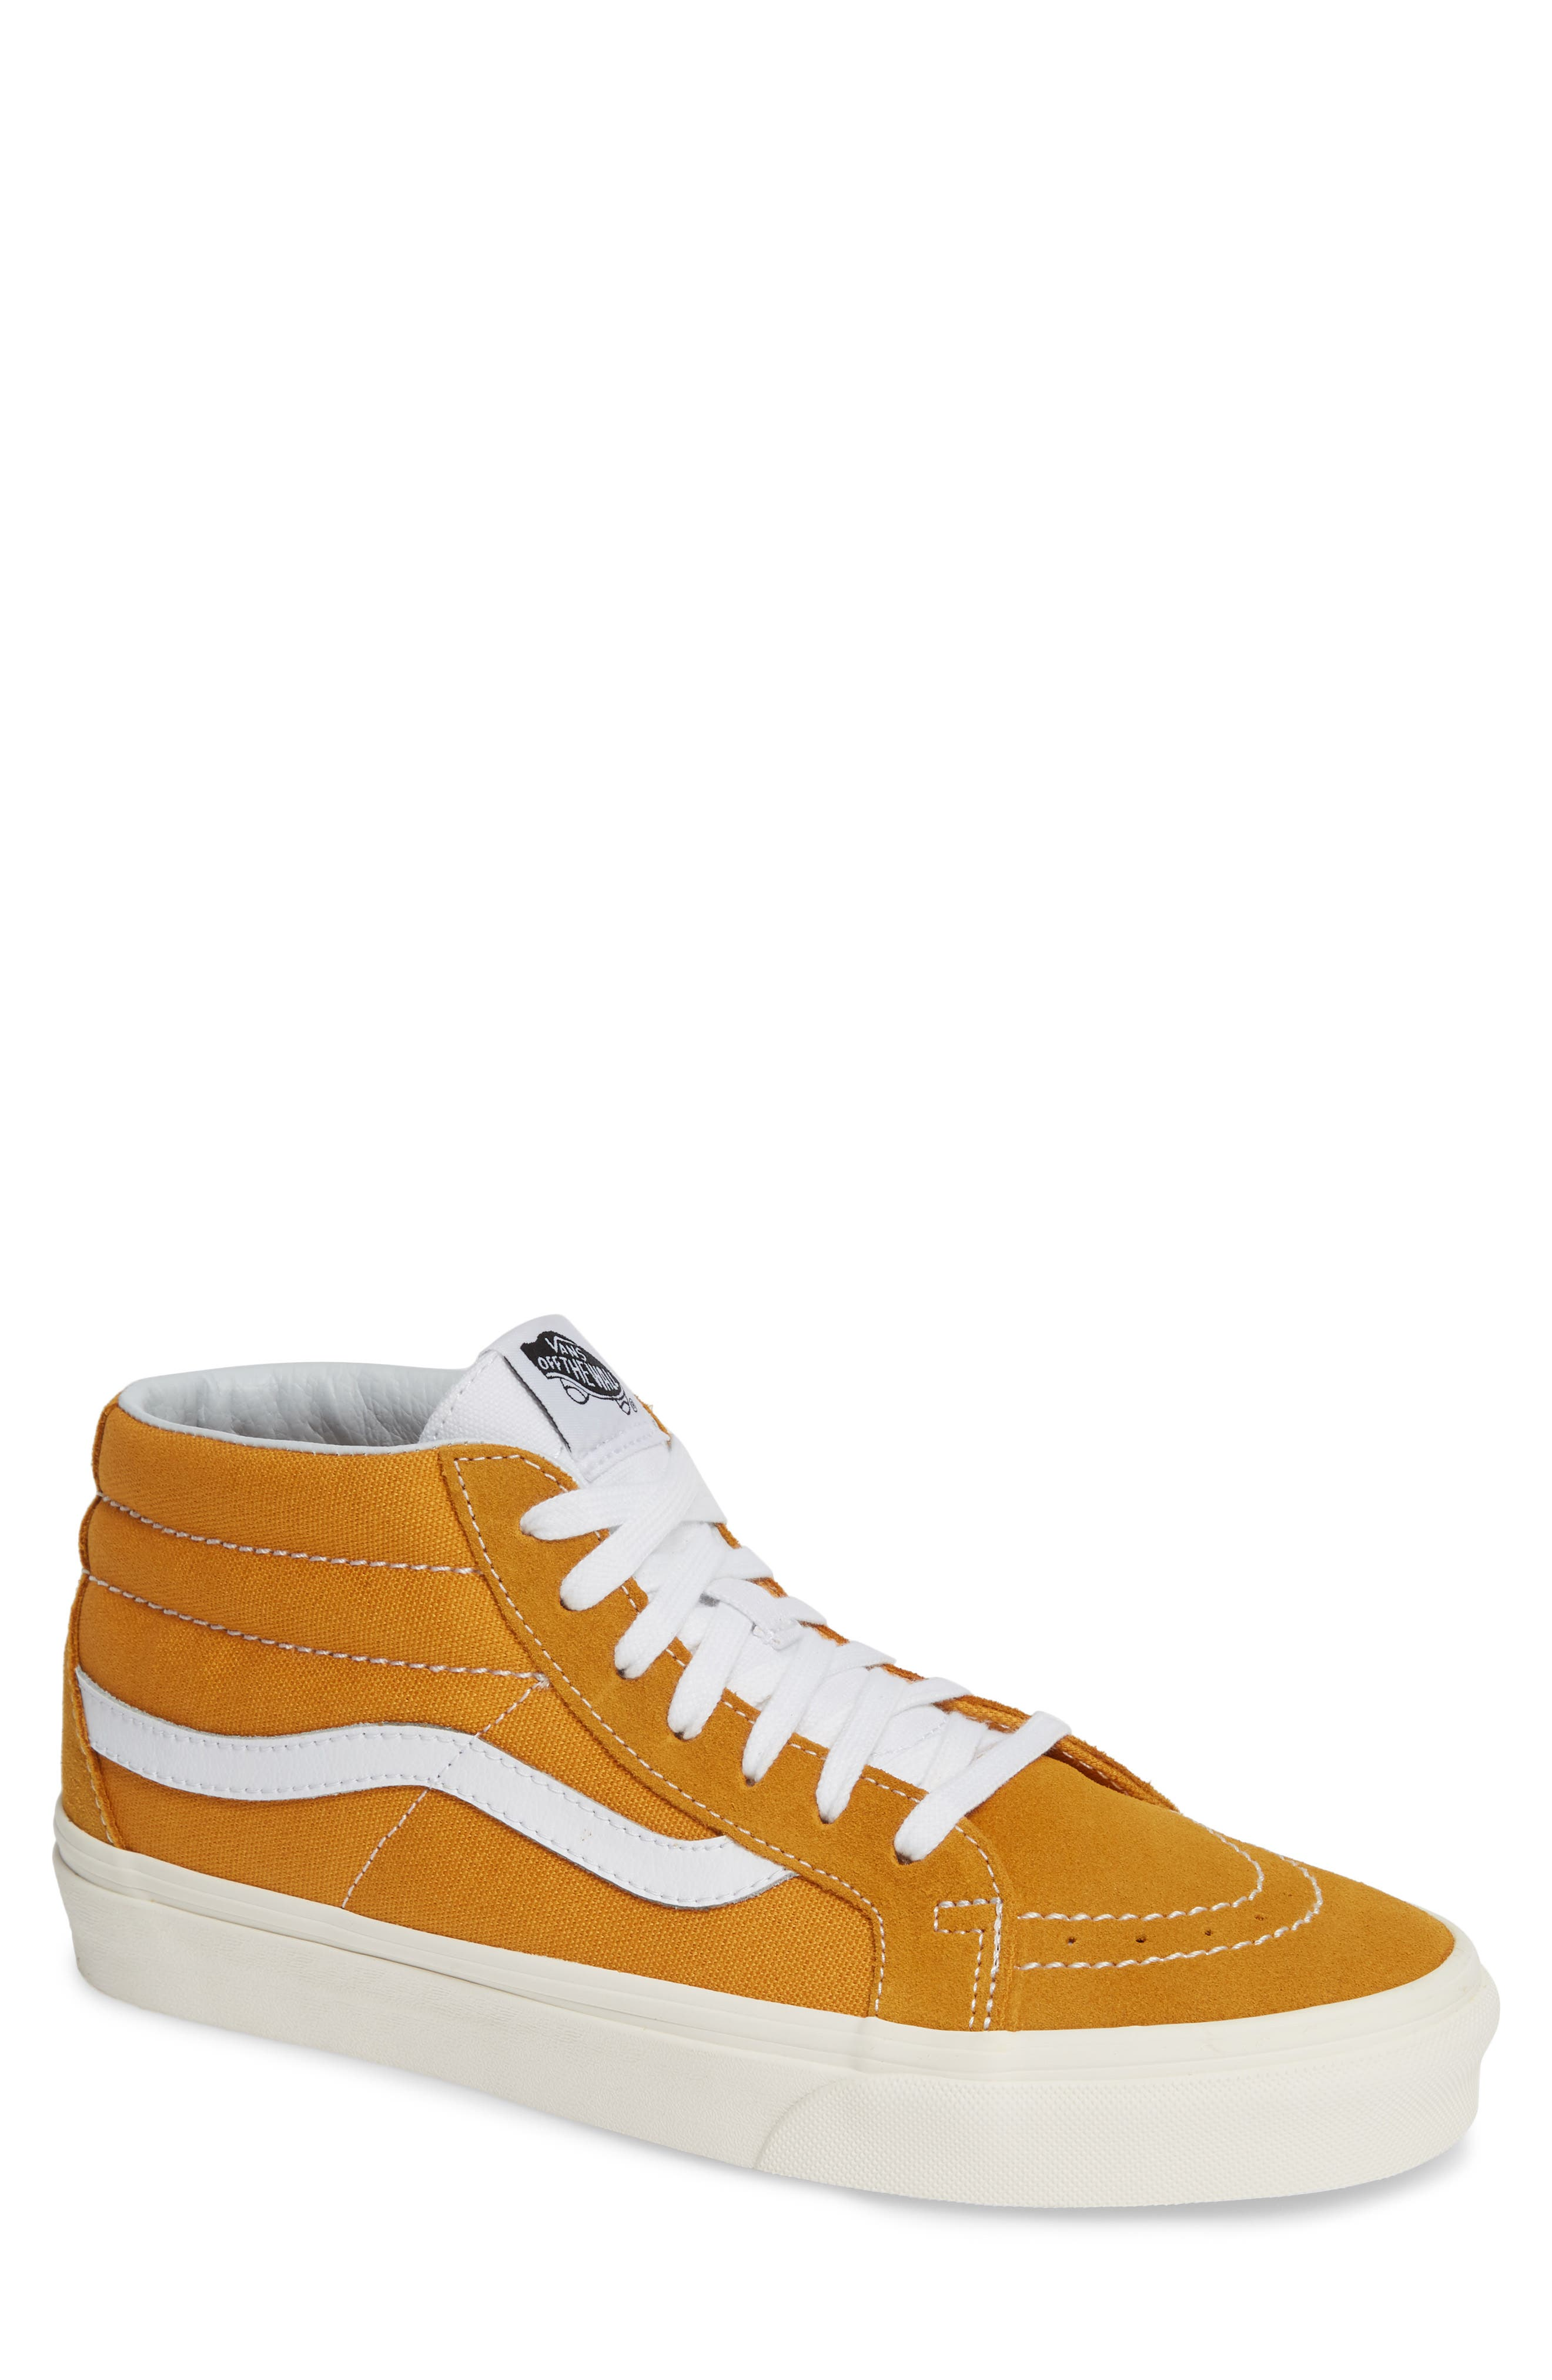 Sk8-Mid Reissue Sneaker,                             Main thumbnail 1, color,                             SUNFLOWER CANVAS/SUEDE